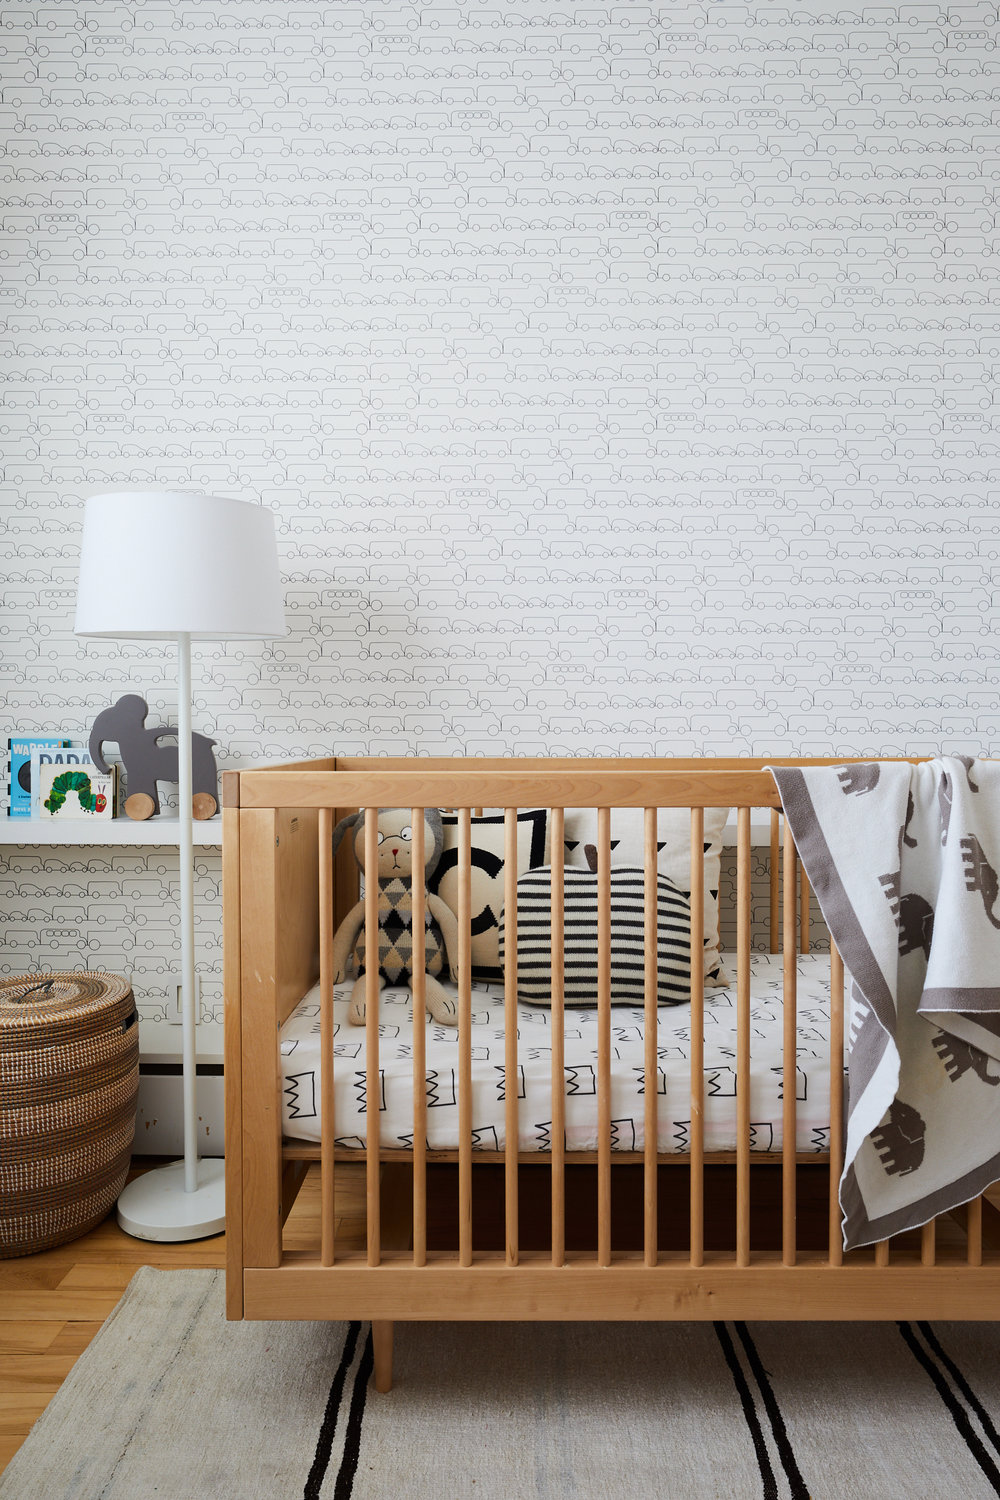 West_19th_Childrens_Room_012.jpg